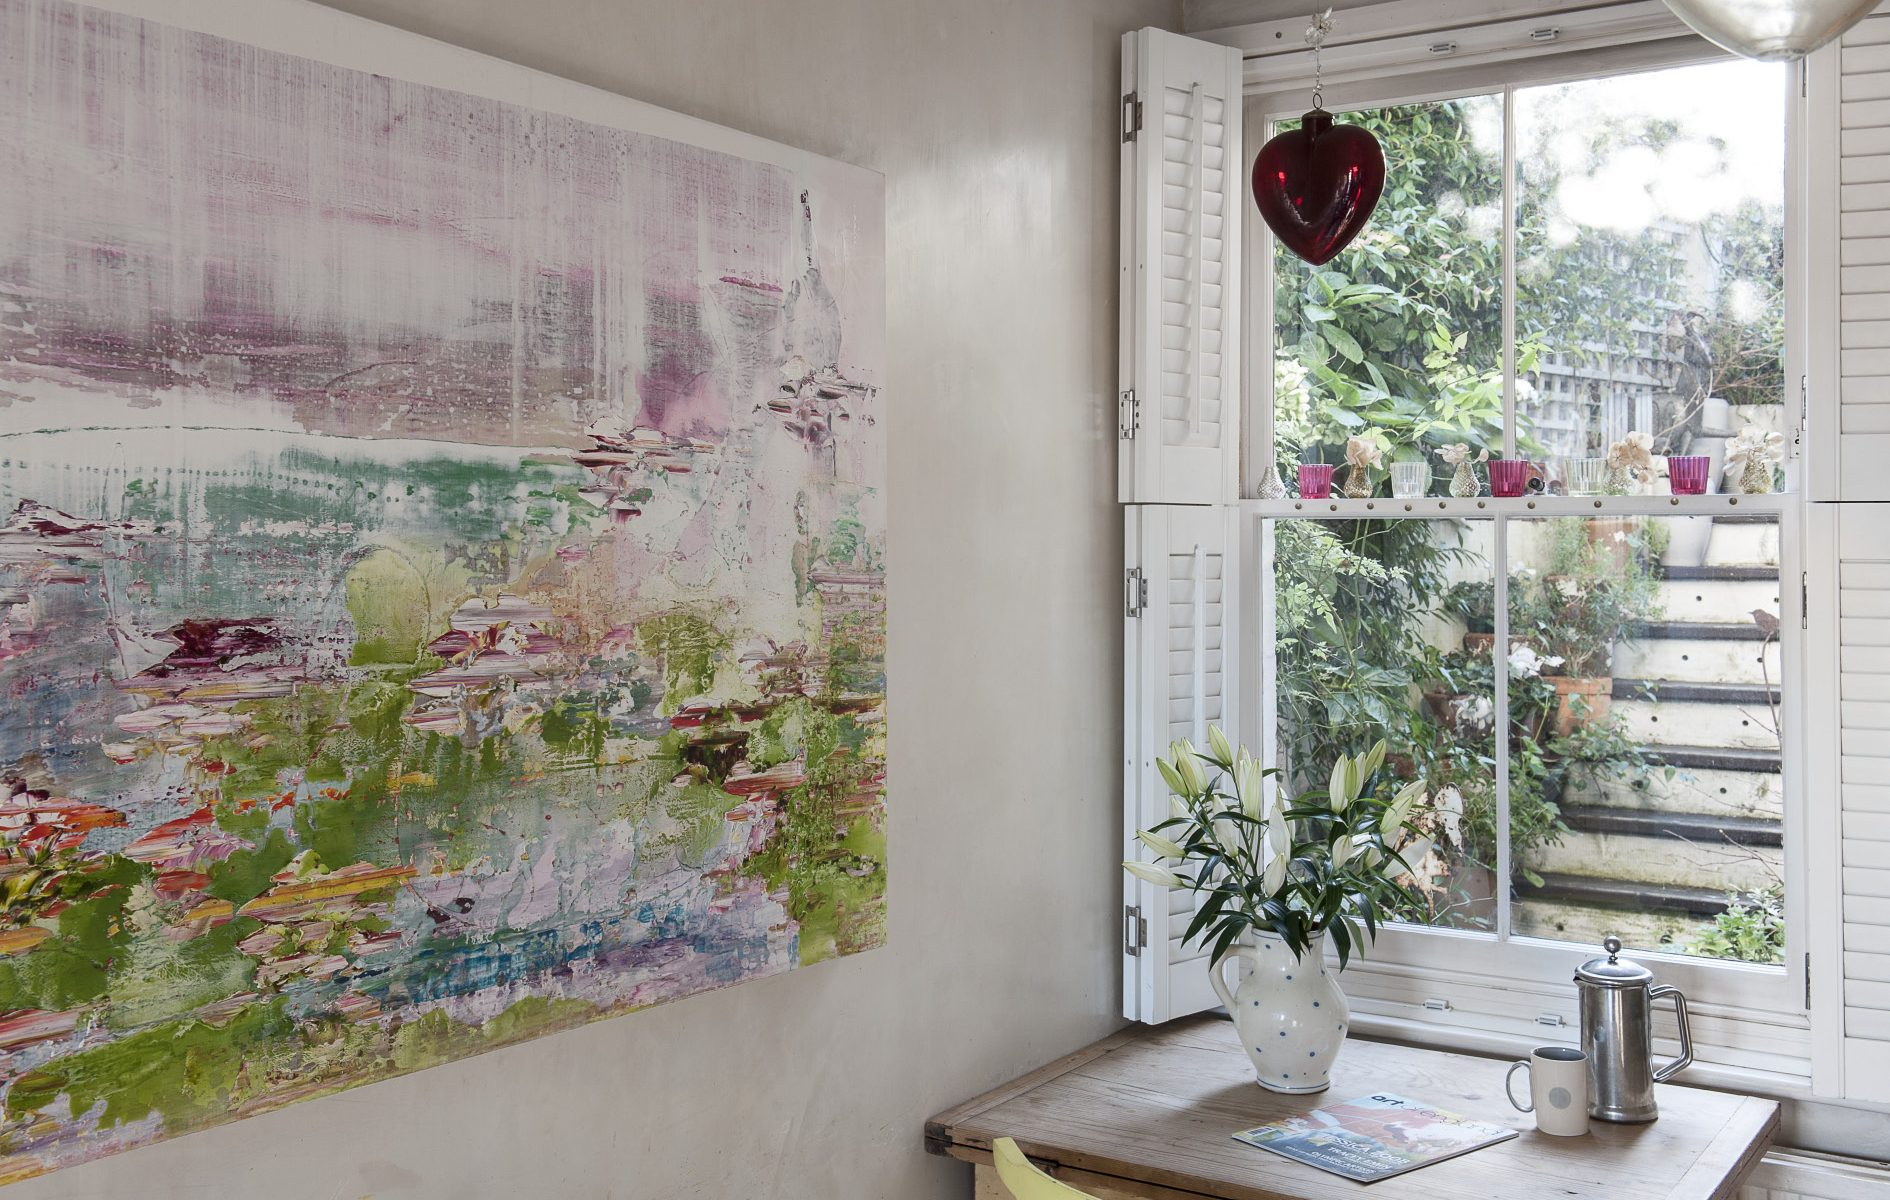 In the corner of the sitting room a window frames the honeysuckled steps that lead up to the garden, creating a natural picture of its own